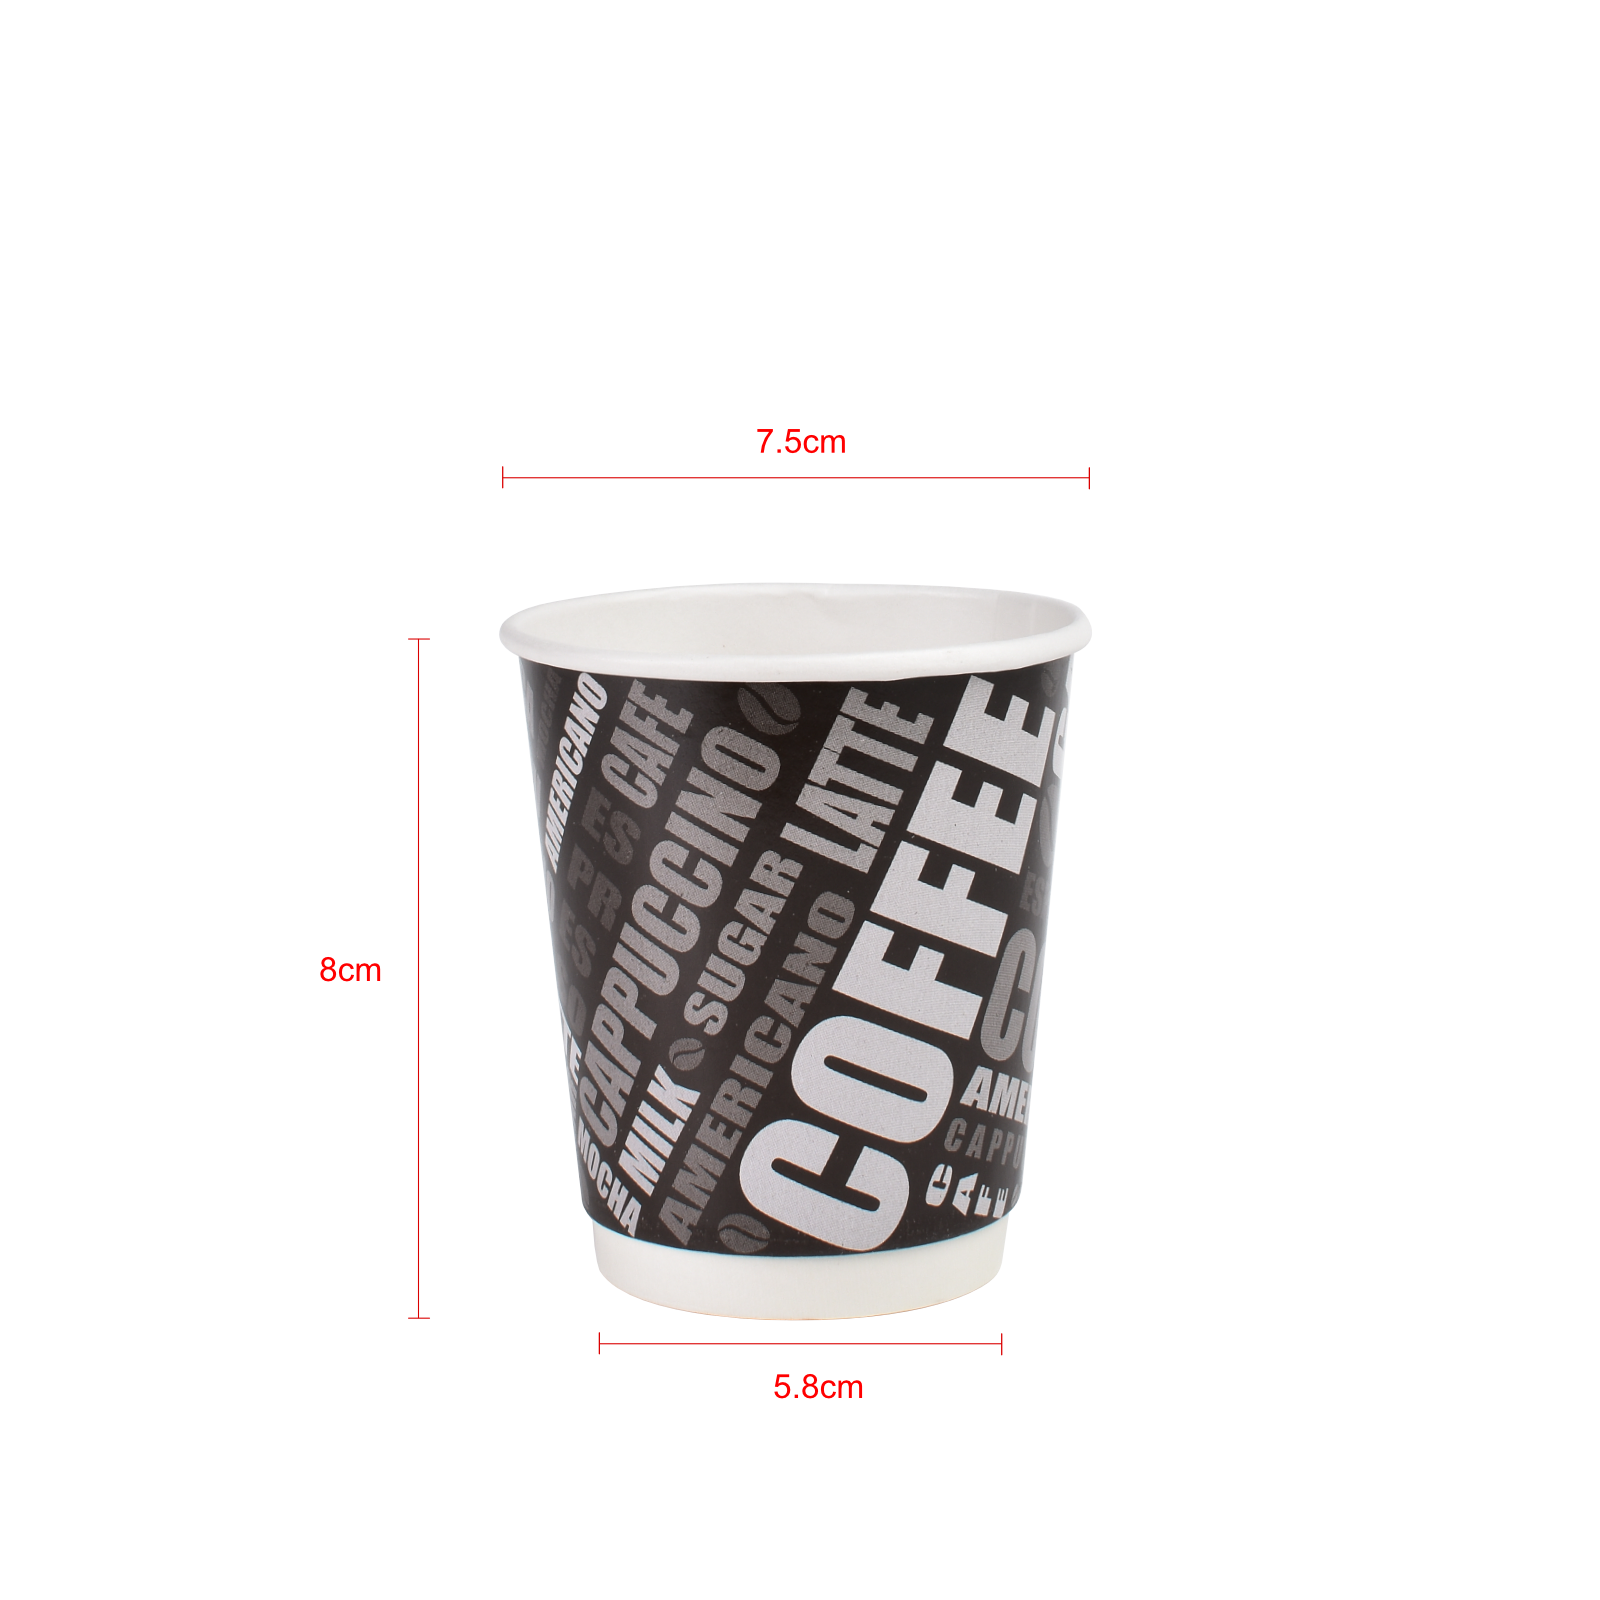 8OZ Hot Paper Cup (Coffee Printing) 25pcs RM6.20.png